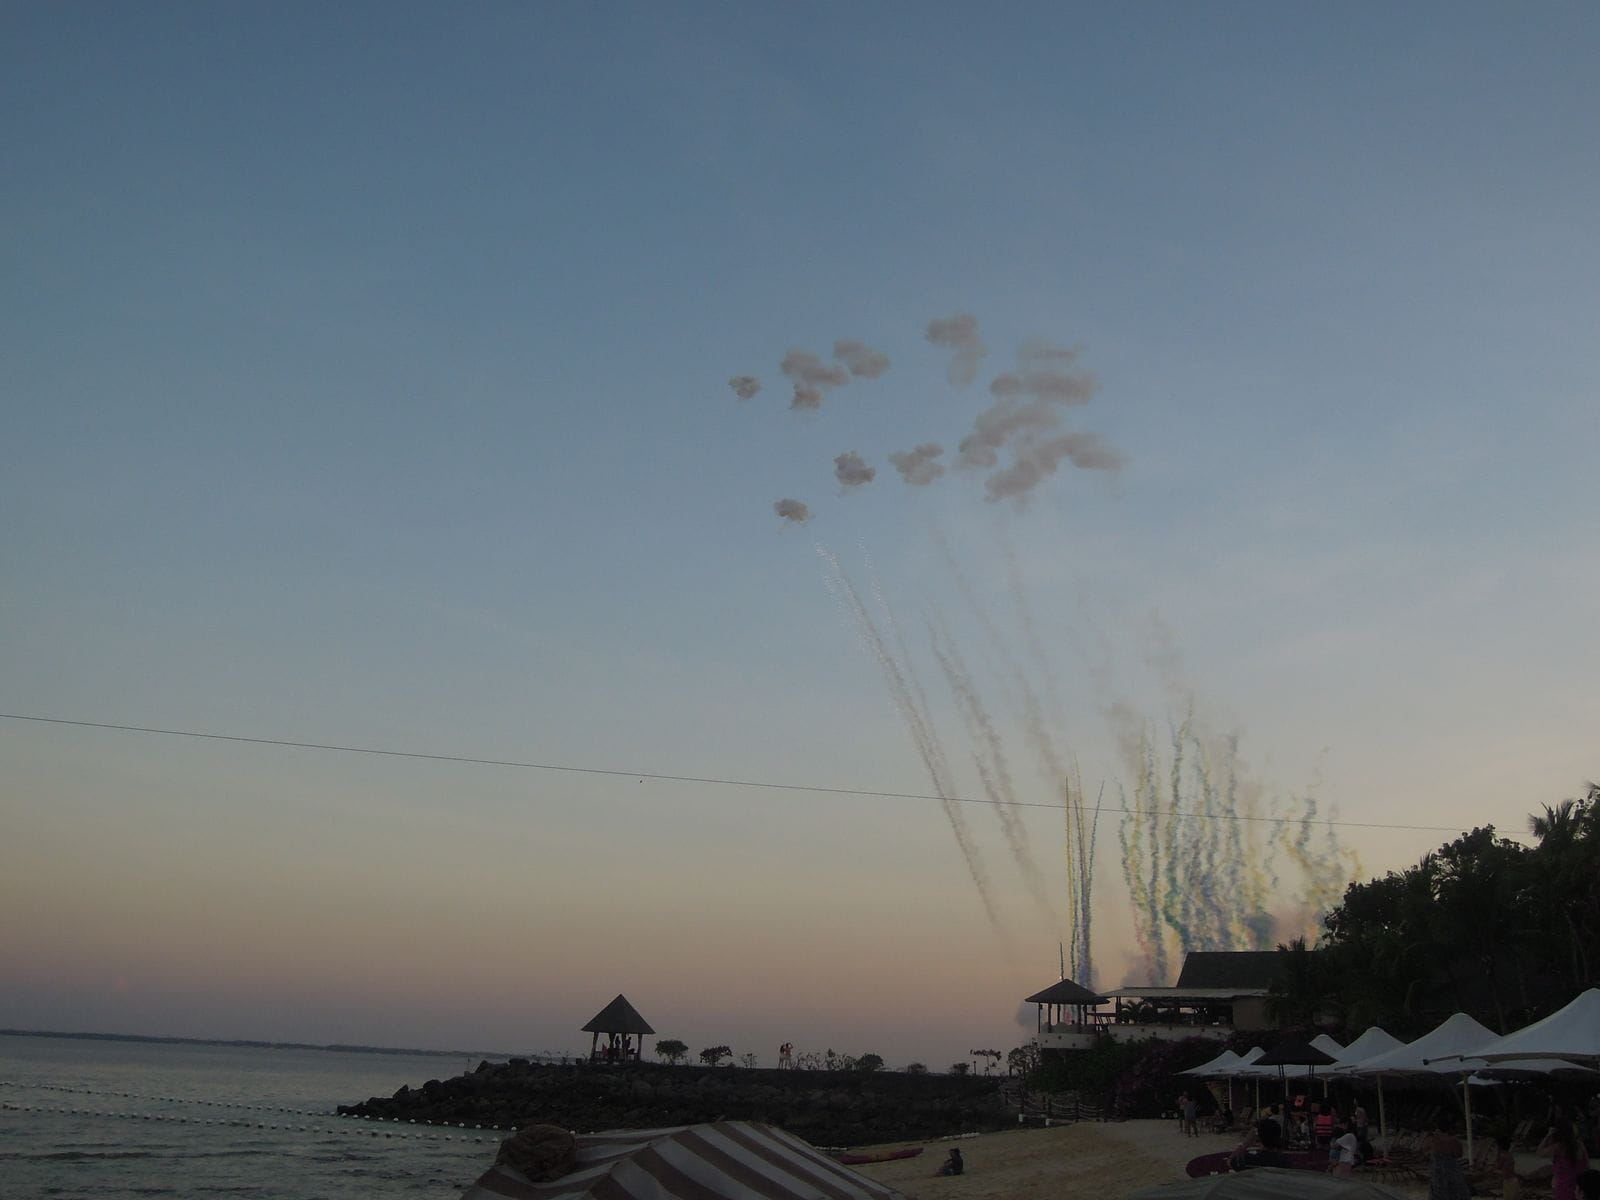 Fireworks in the sky as viewed from the beach